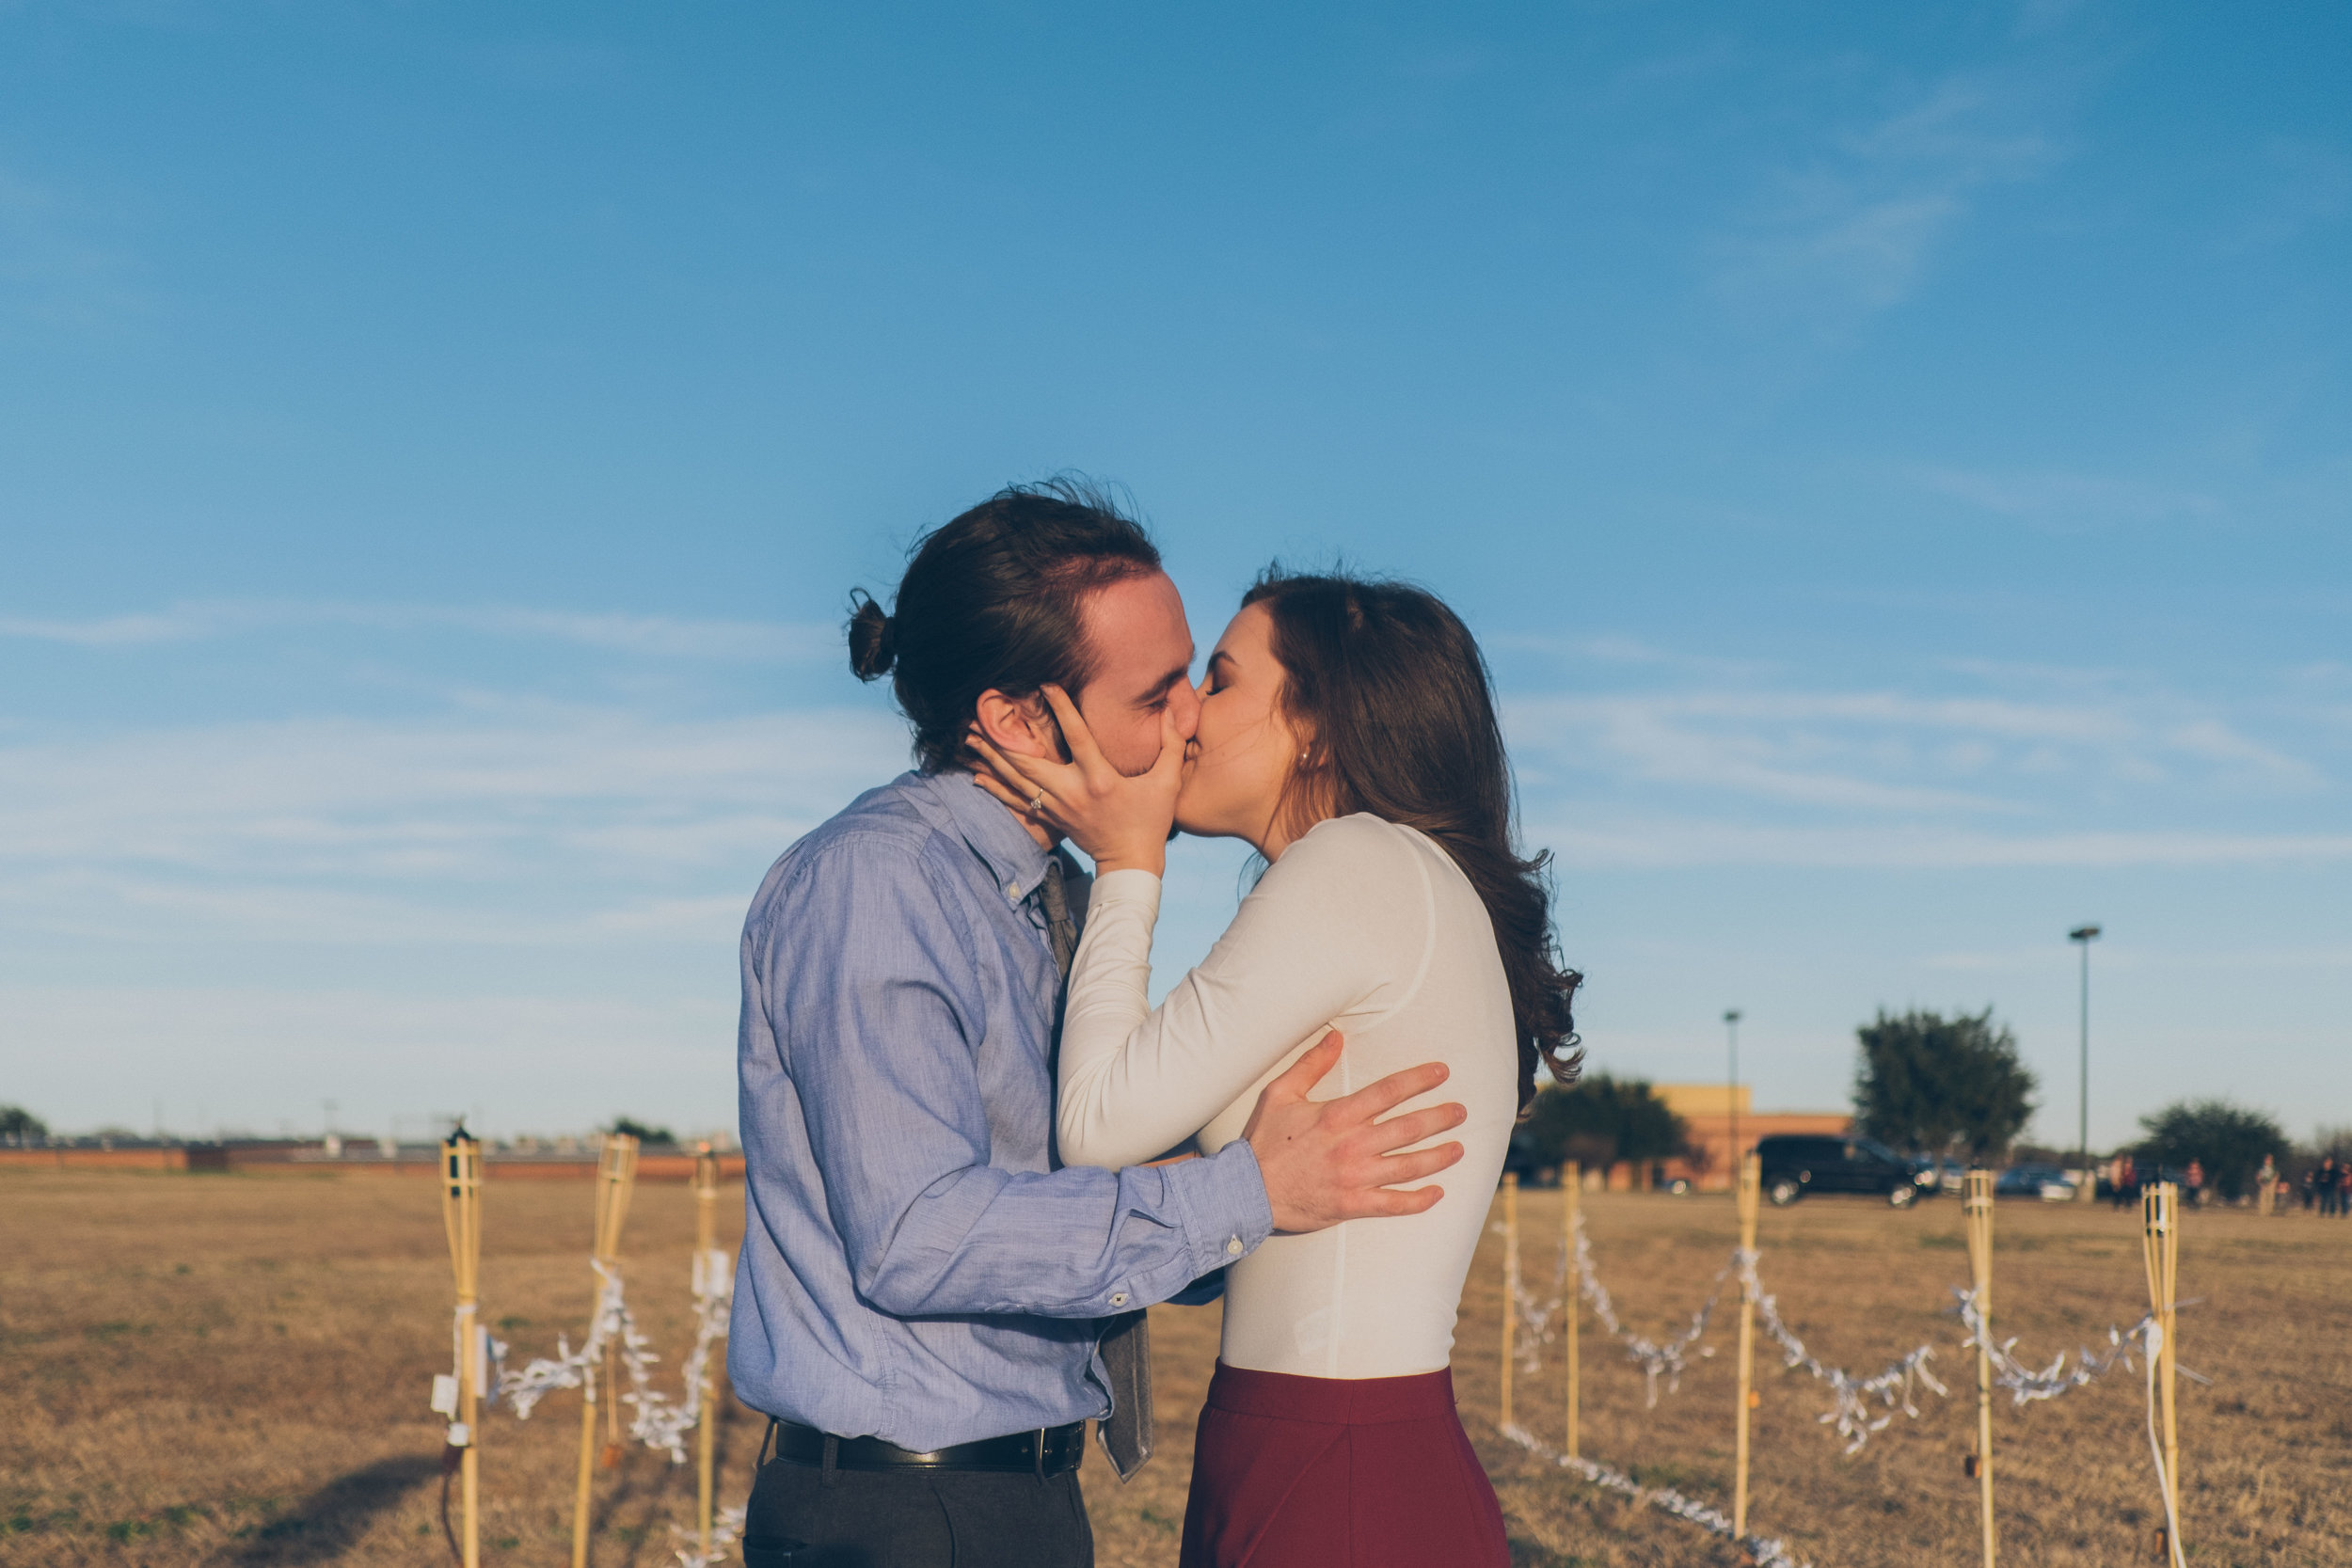 Man and woman kissing with blue sky in background